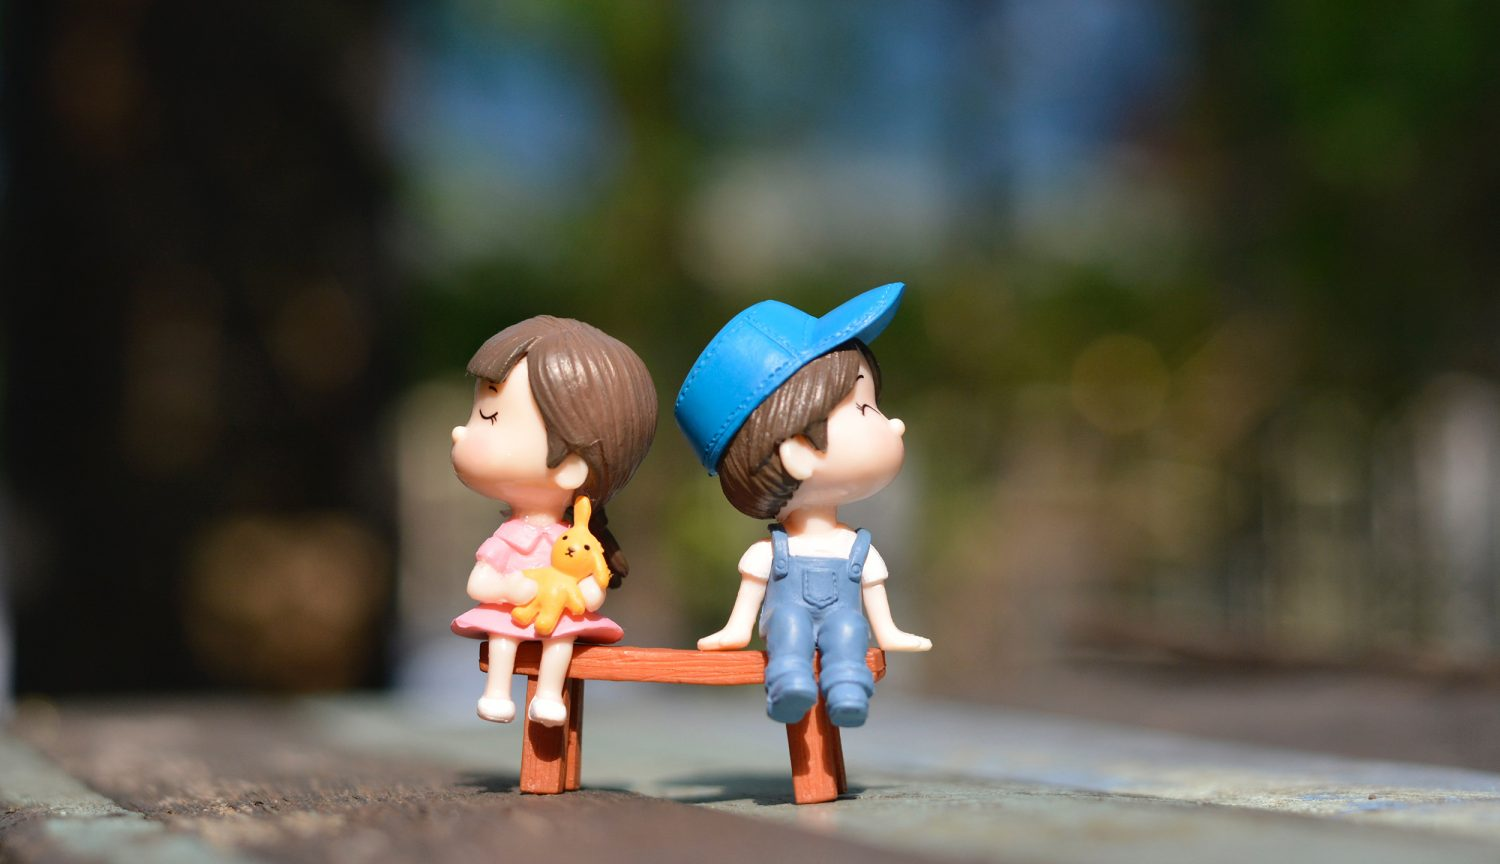 Adorable couple sitting on bench